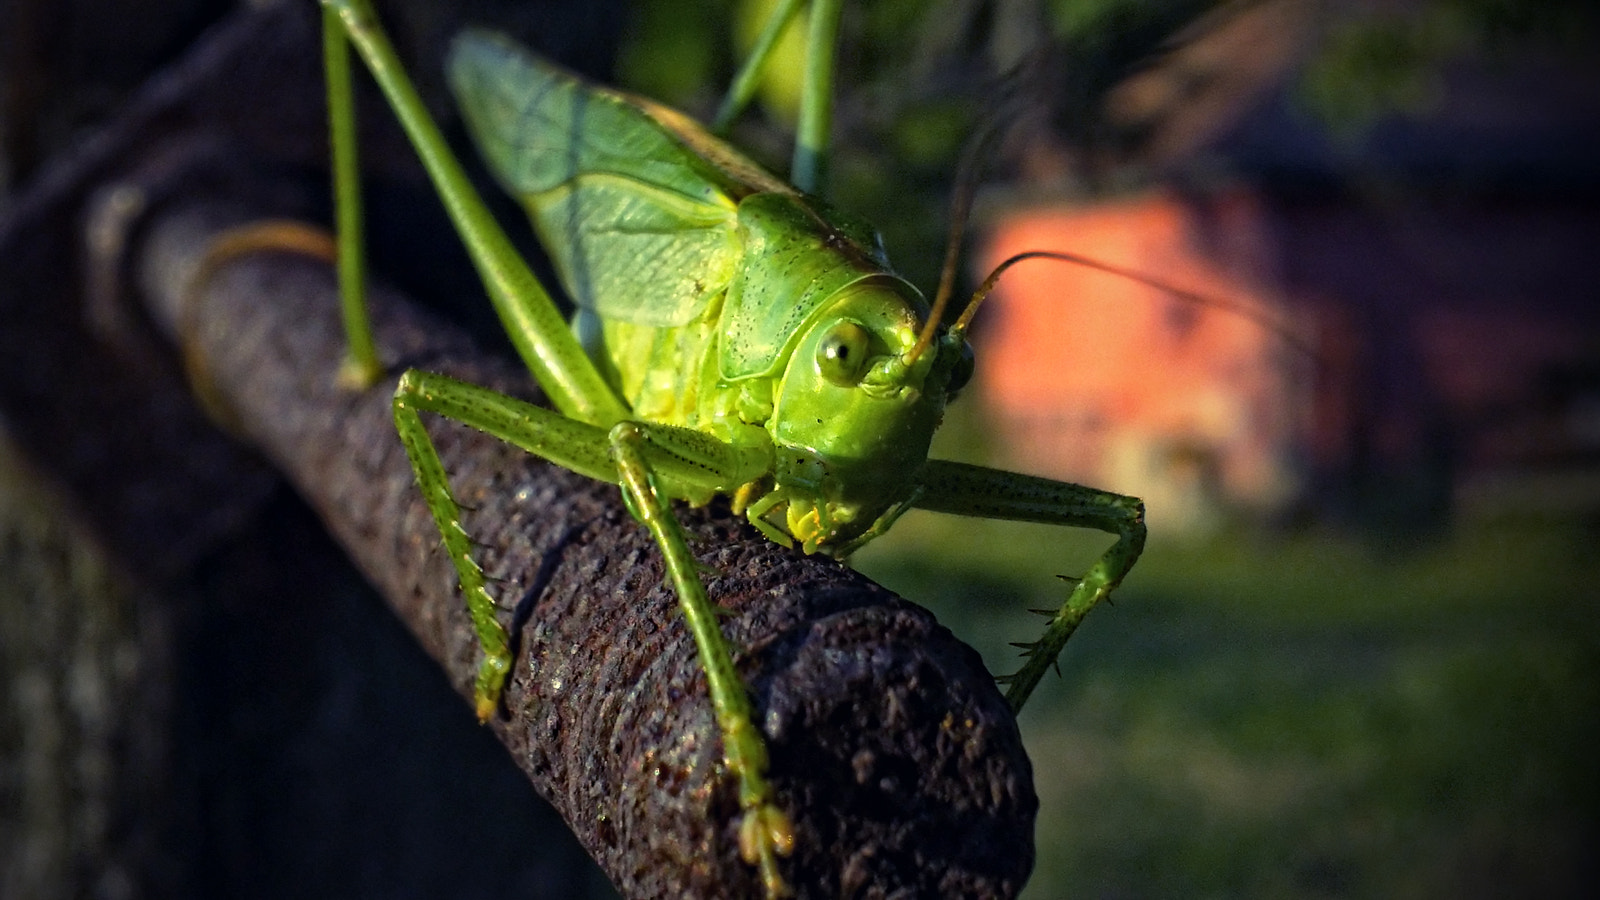 Photograph Green Locust at the end of the iron bar by Dávid Detkó on 500px